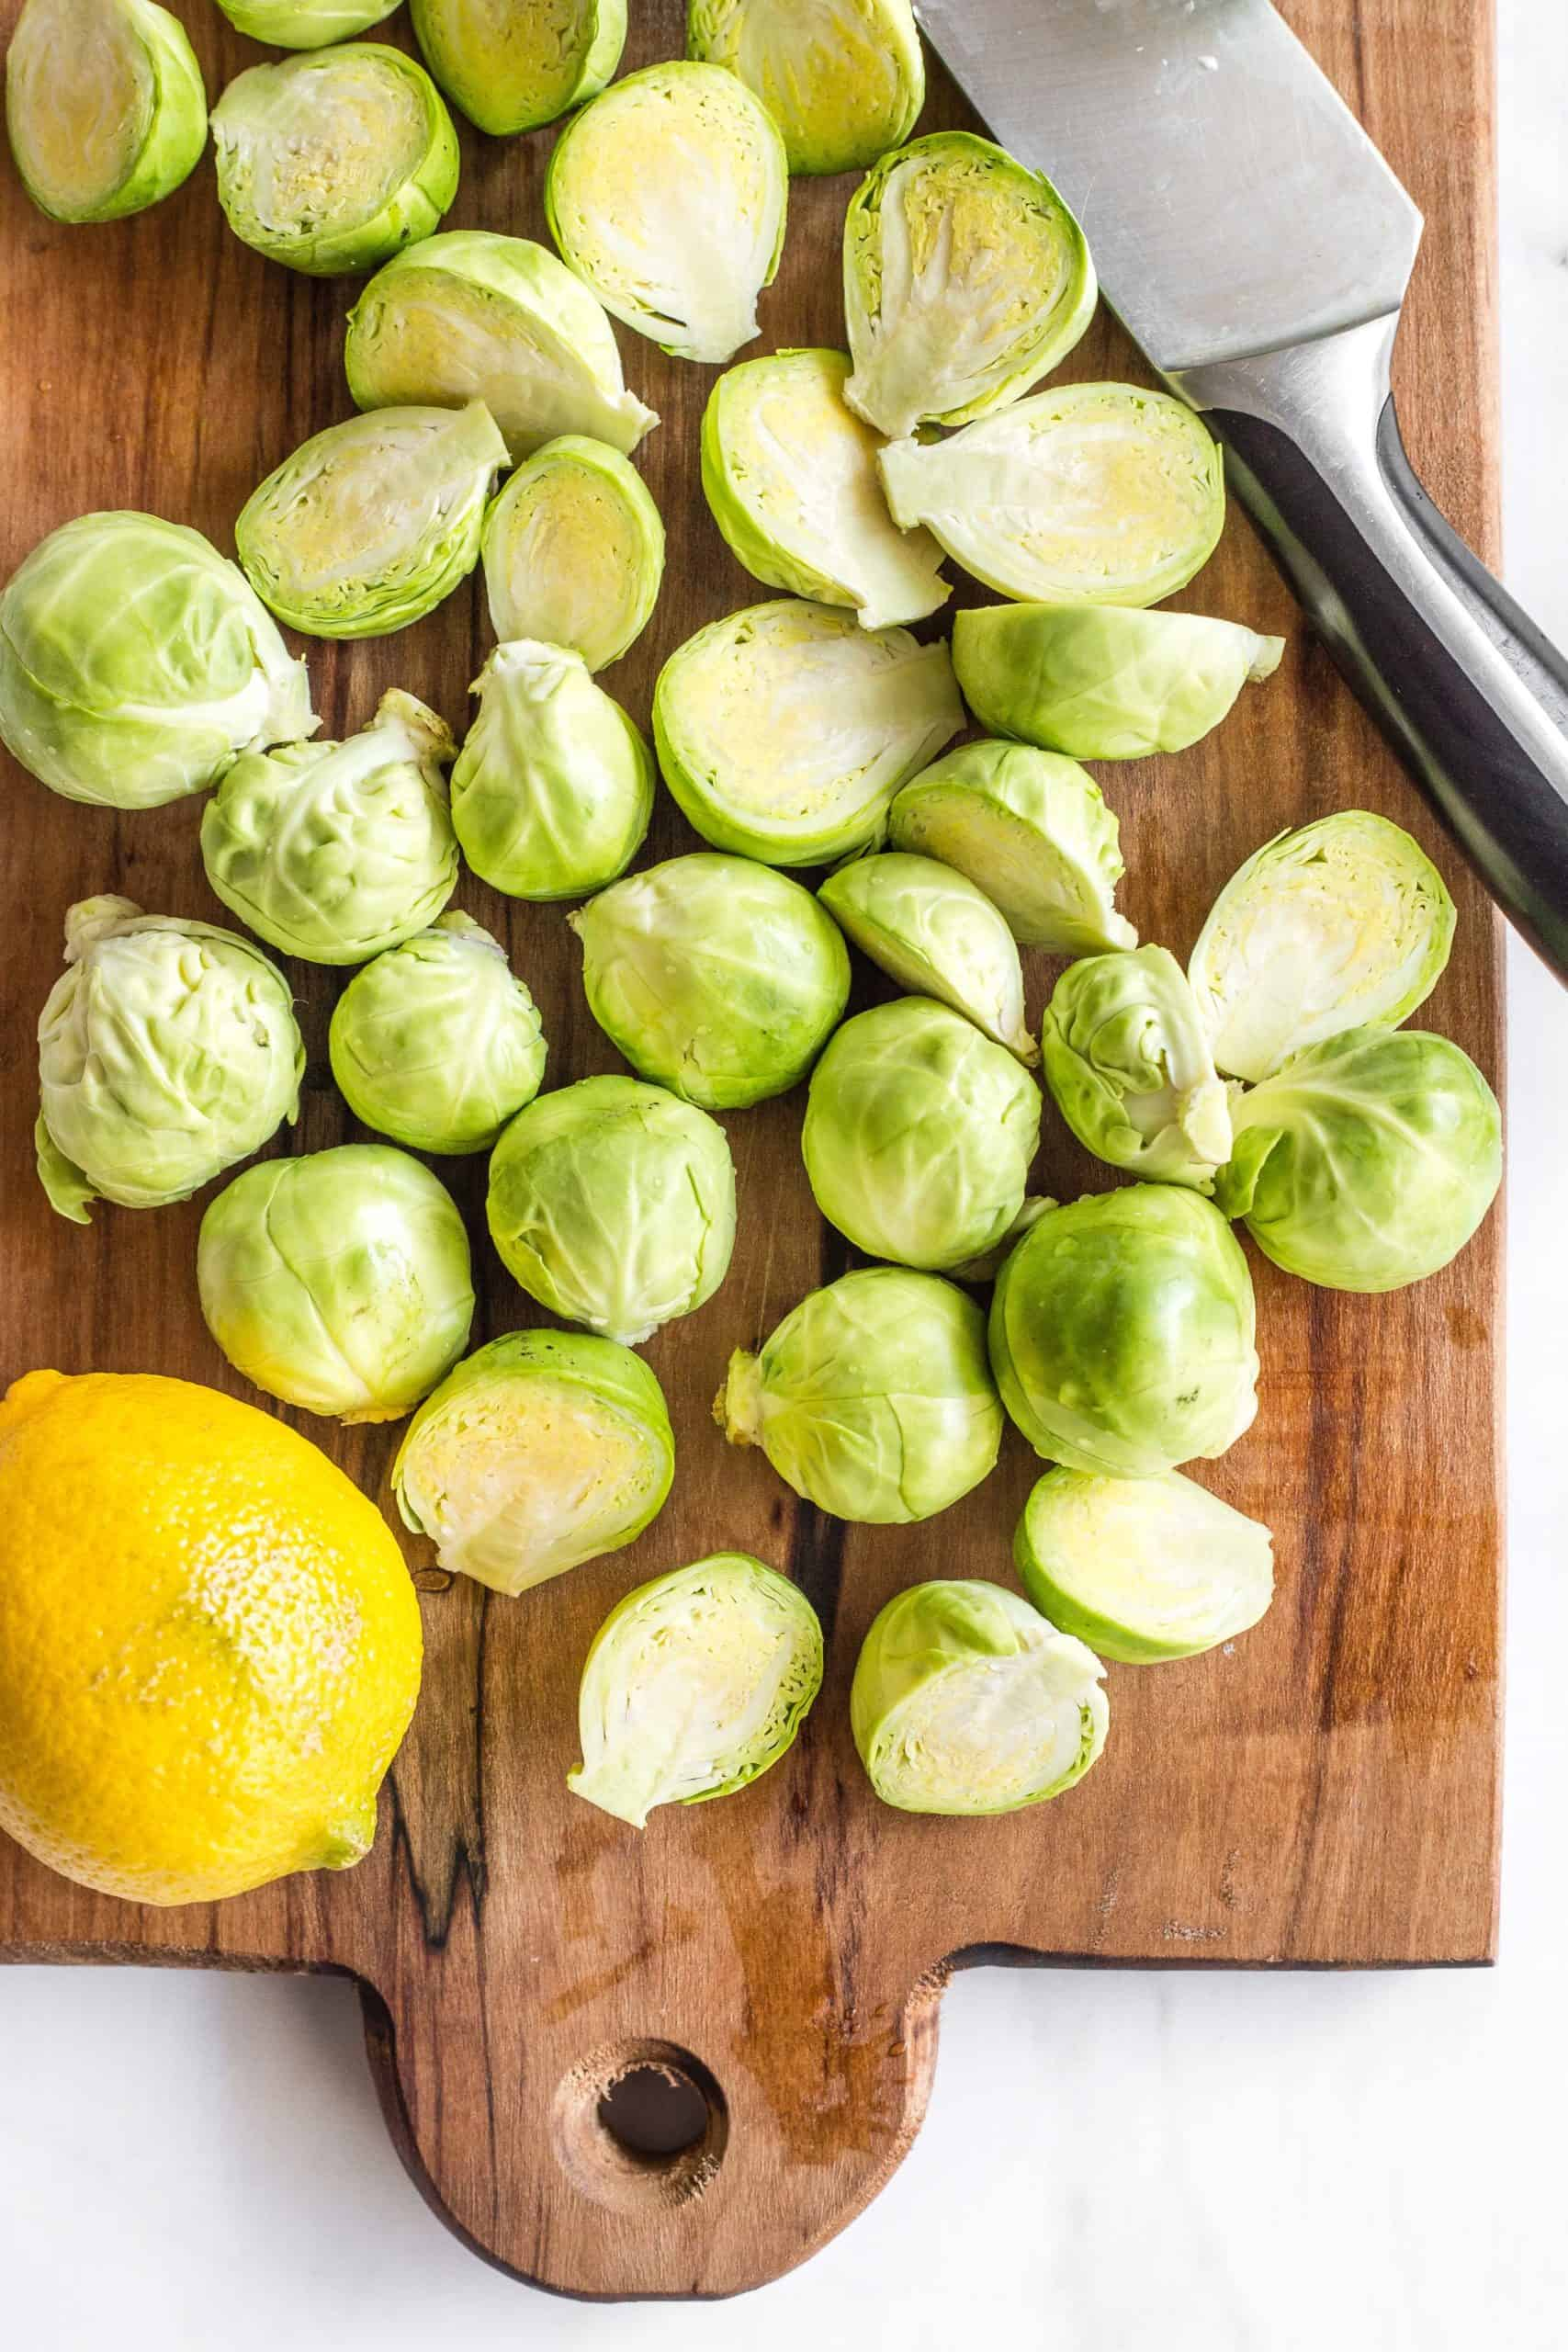 Raw Brussels sprouts cut into halves on a wooden board.